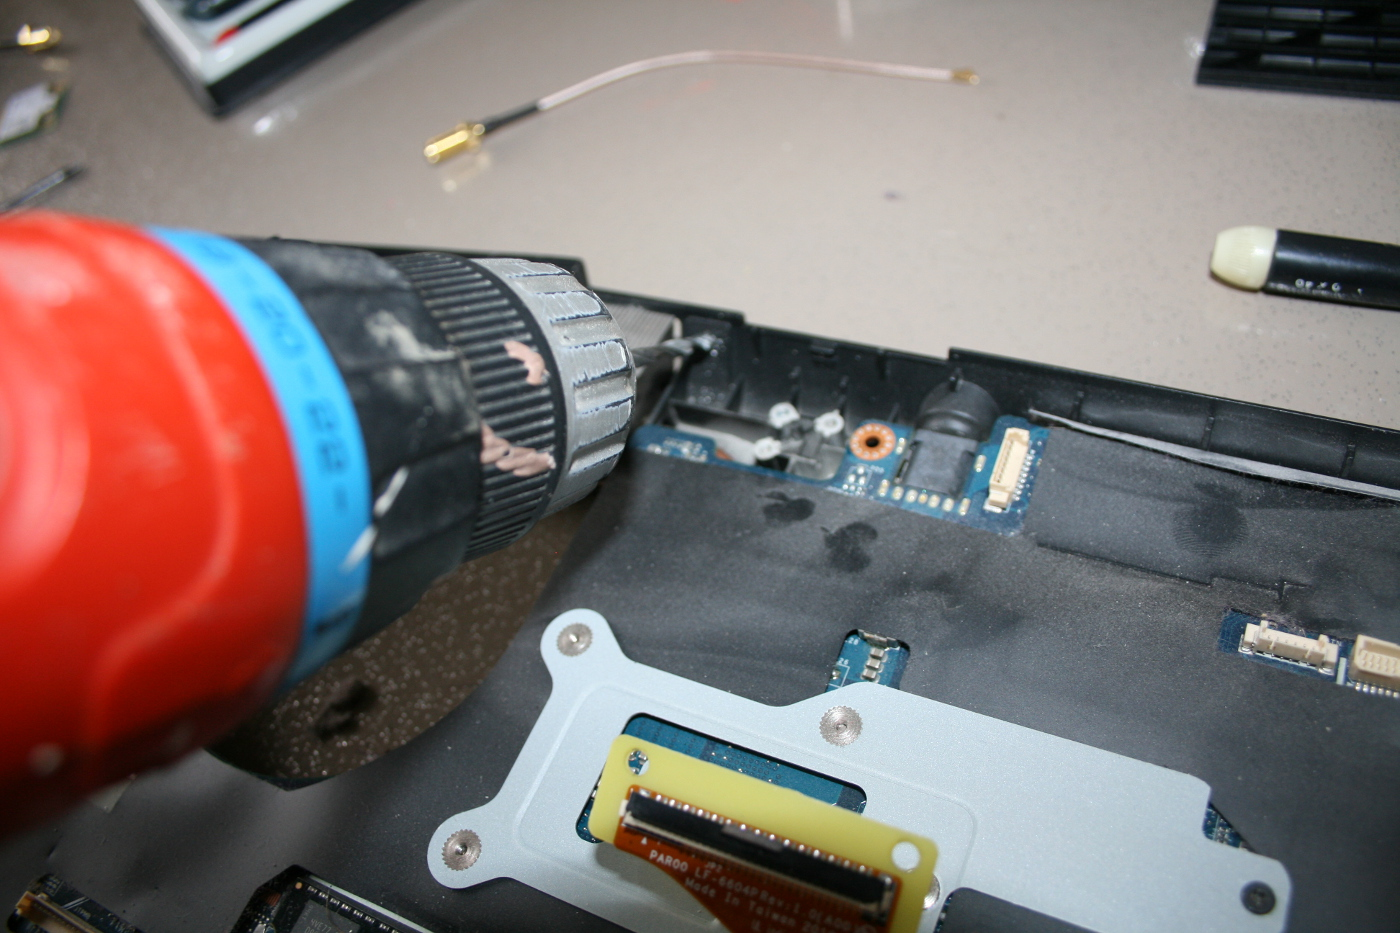 12-percage-chassis-alienware